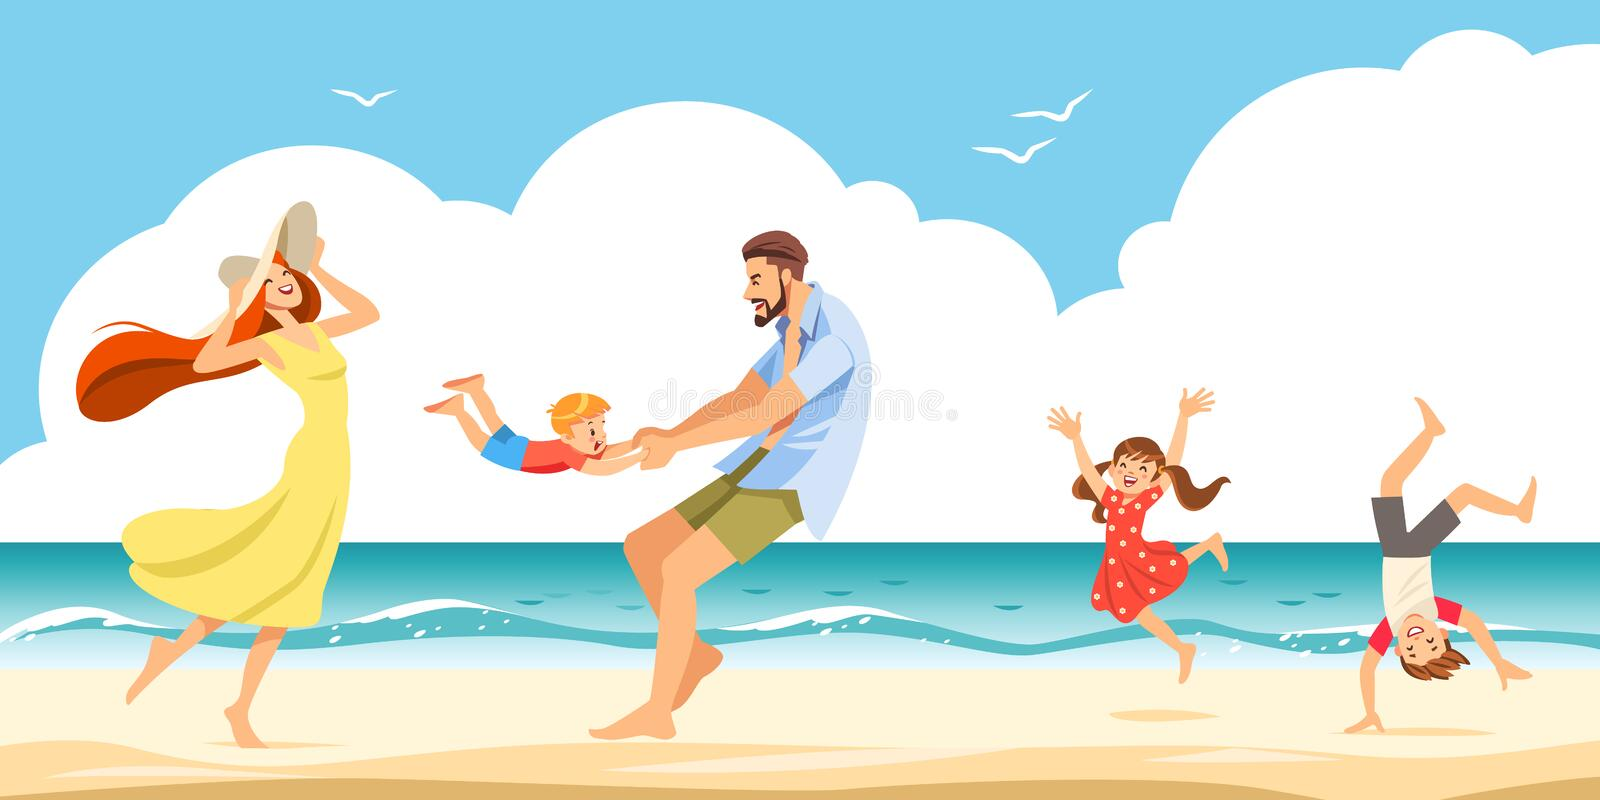 Good relations in family. The cheerful family taking a rest on a sandy shore in the seaside. Vector illustration. royalty free stock photography